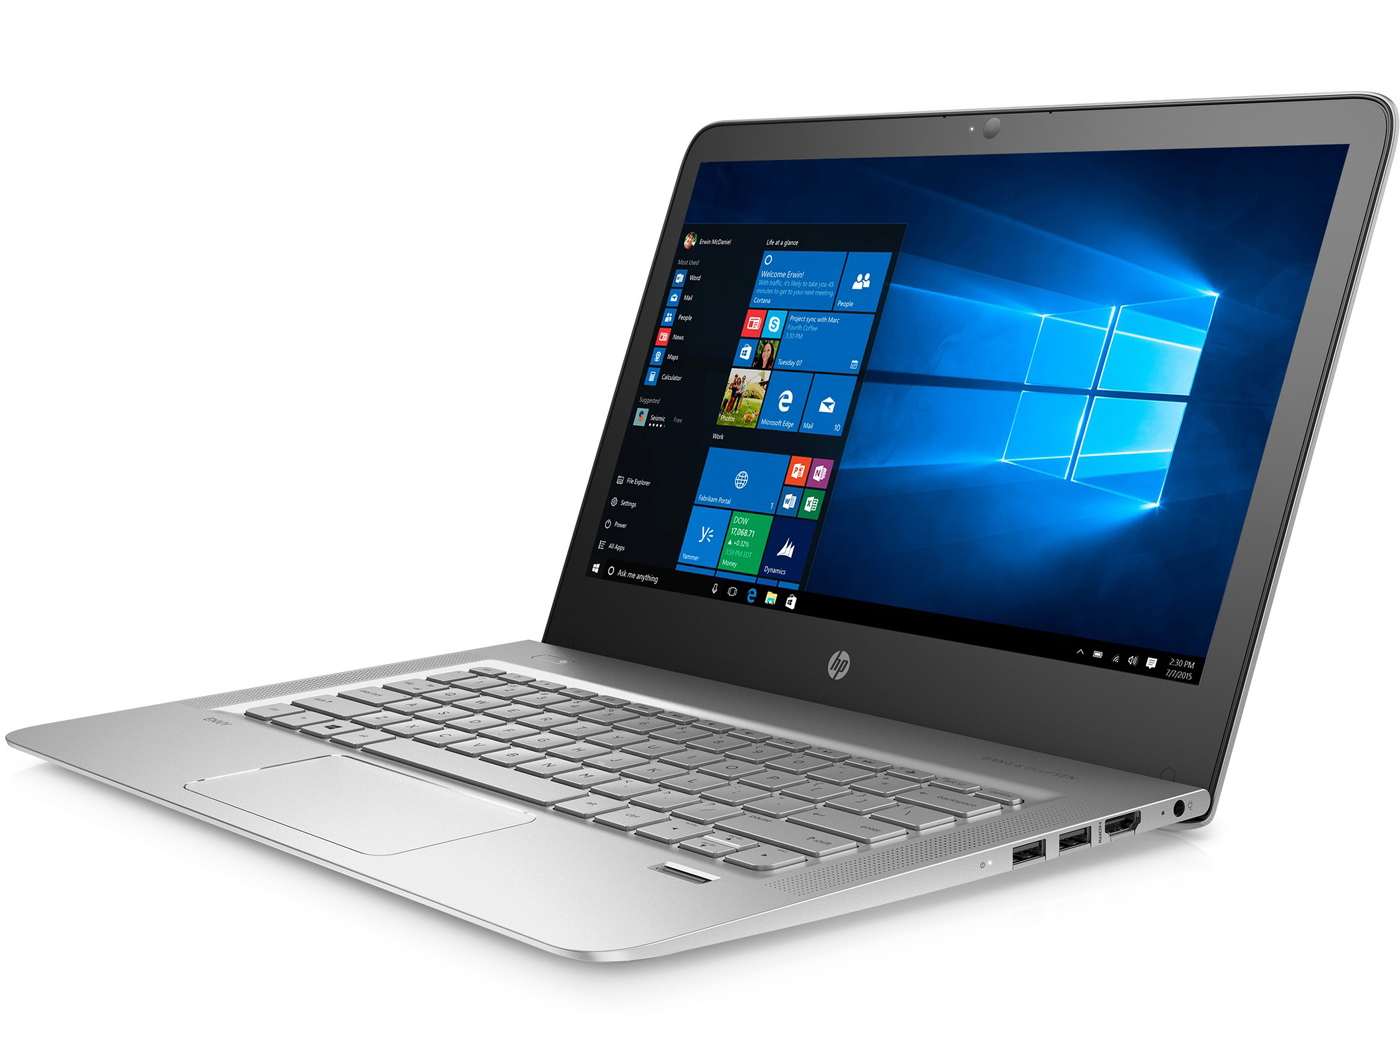 hp envy 13-d020ng subnotebook review